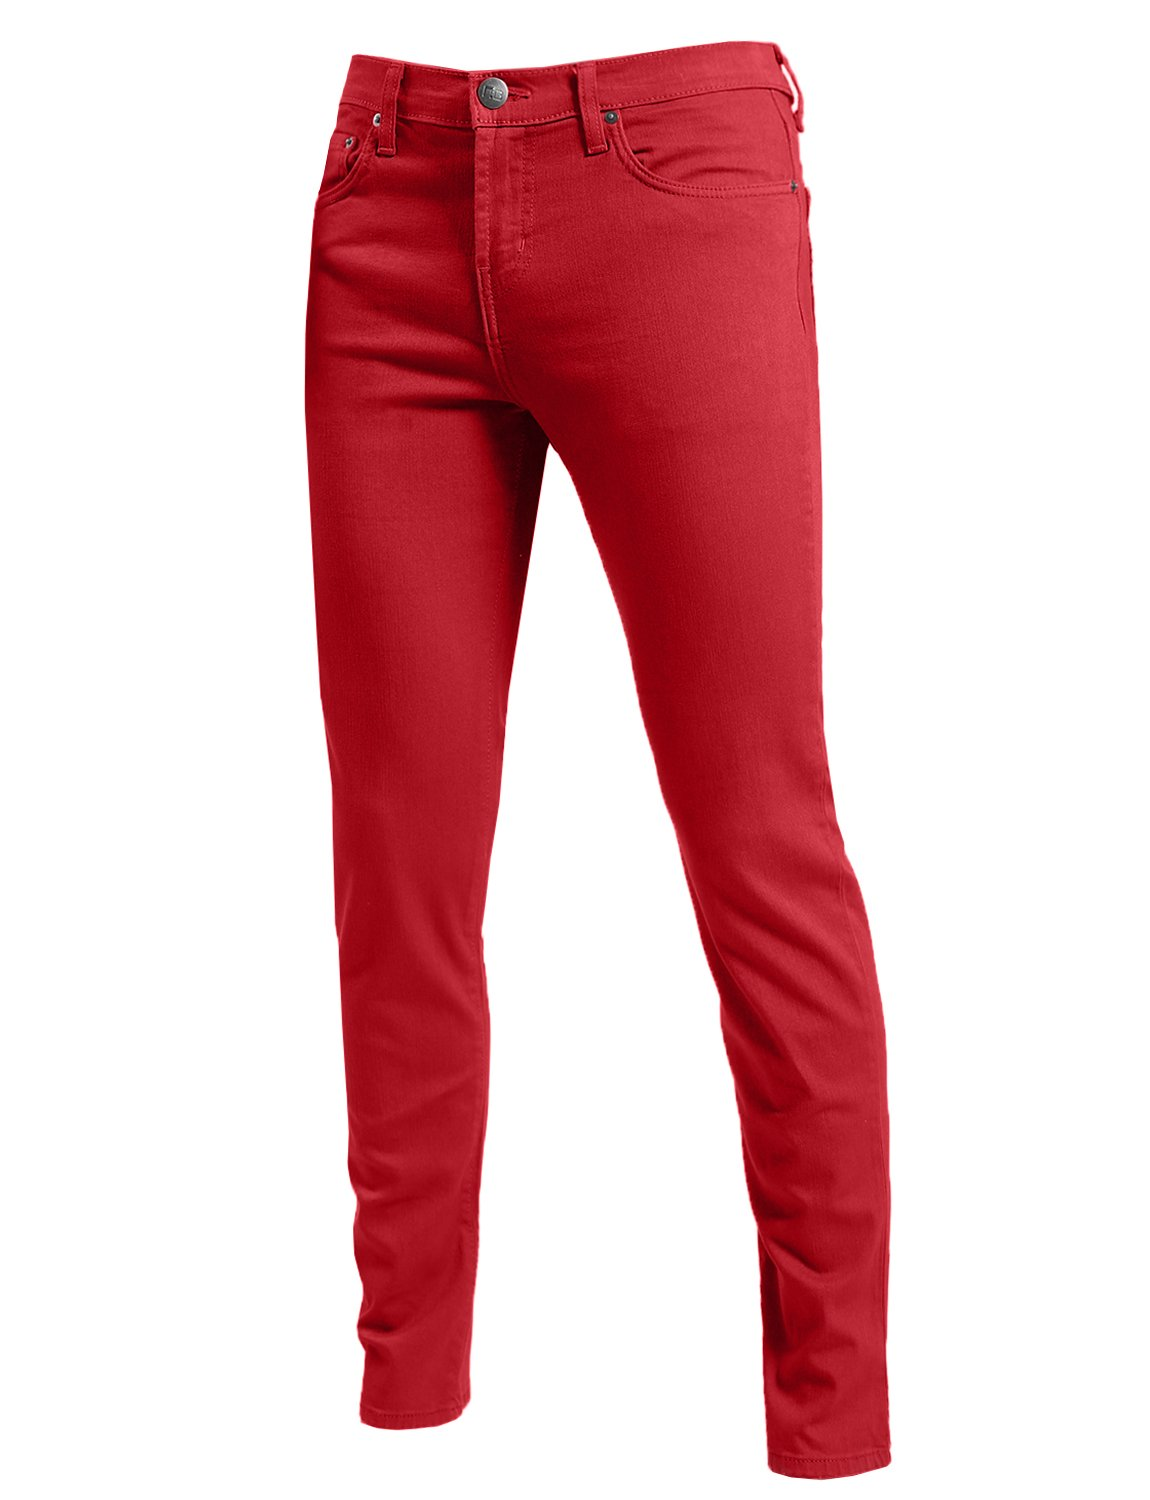 NE PEOPLE Mens Basic 30 Color Fashion Skinny Fit Stretch Jeans by NE PEOPLE